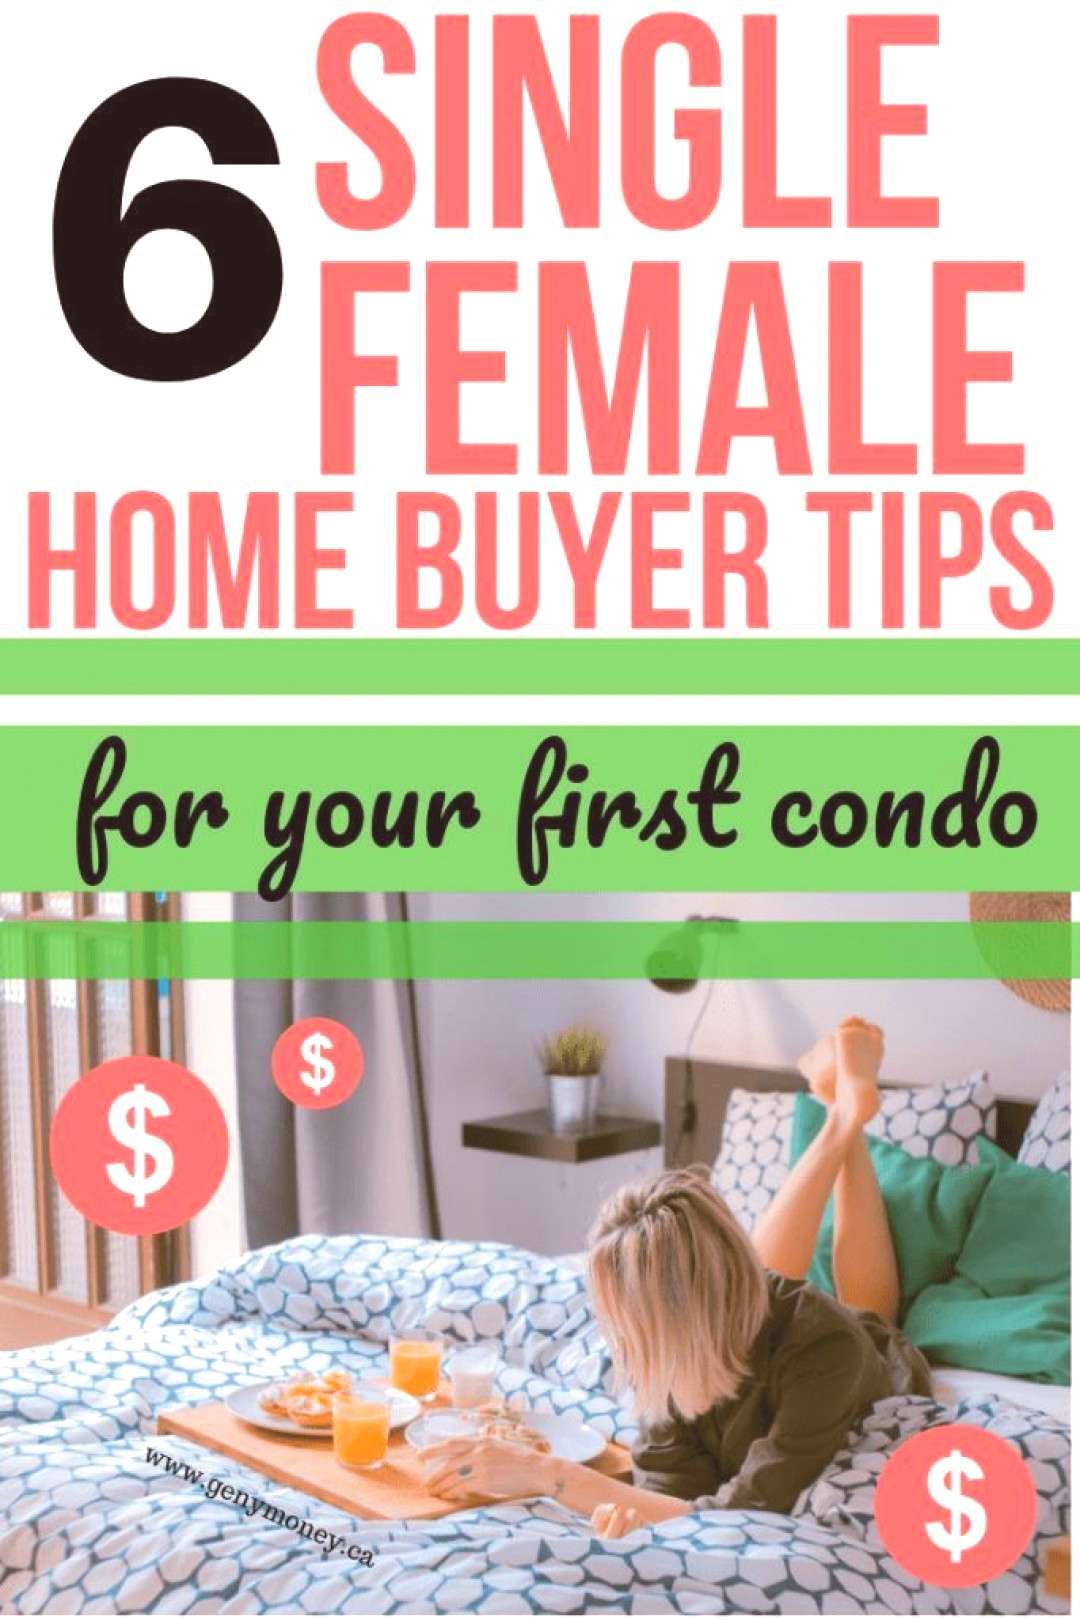 Buying a condo as a single female? Theres more to think about other than whether you want to live